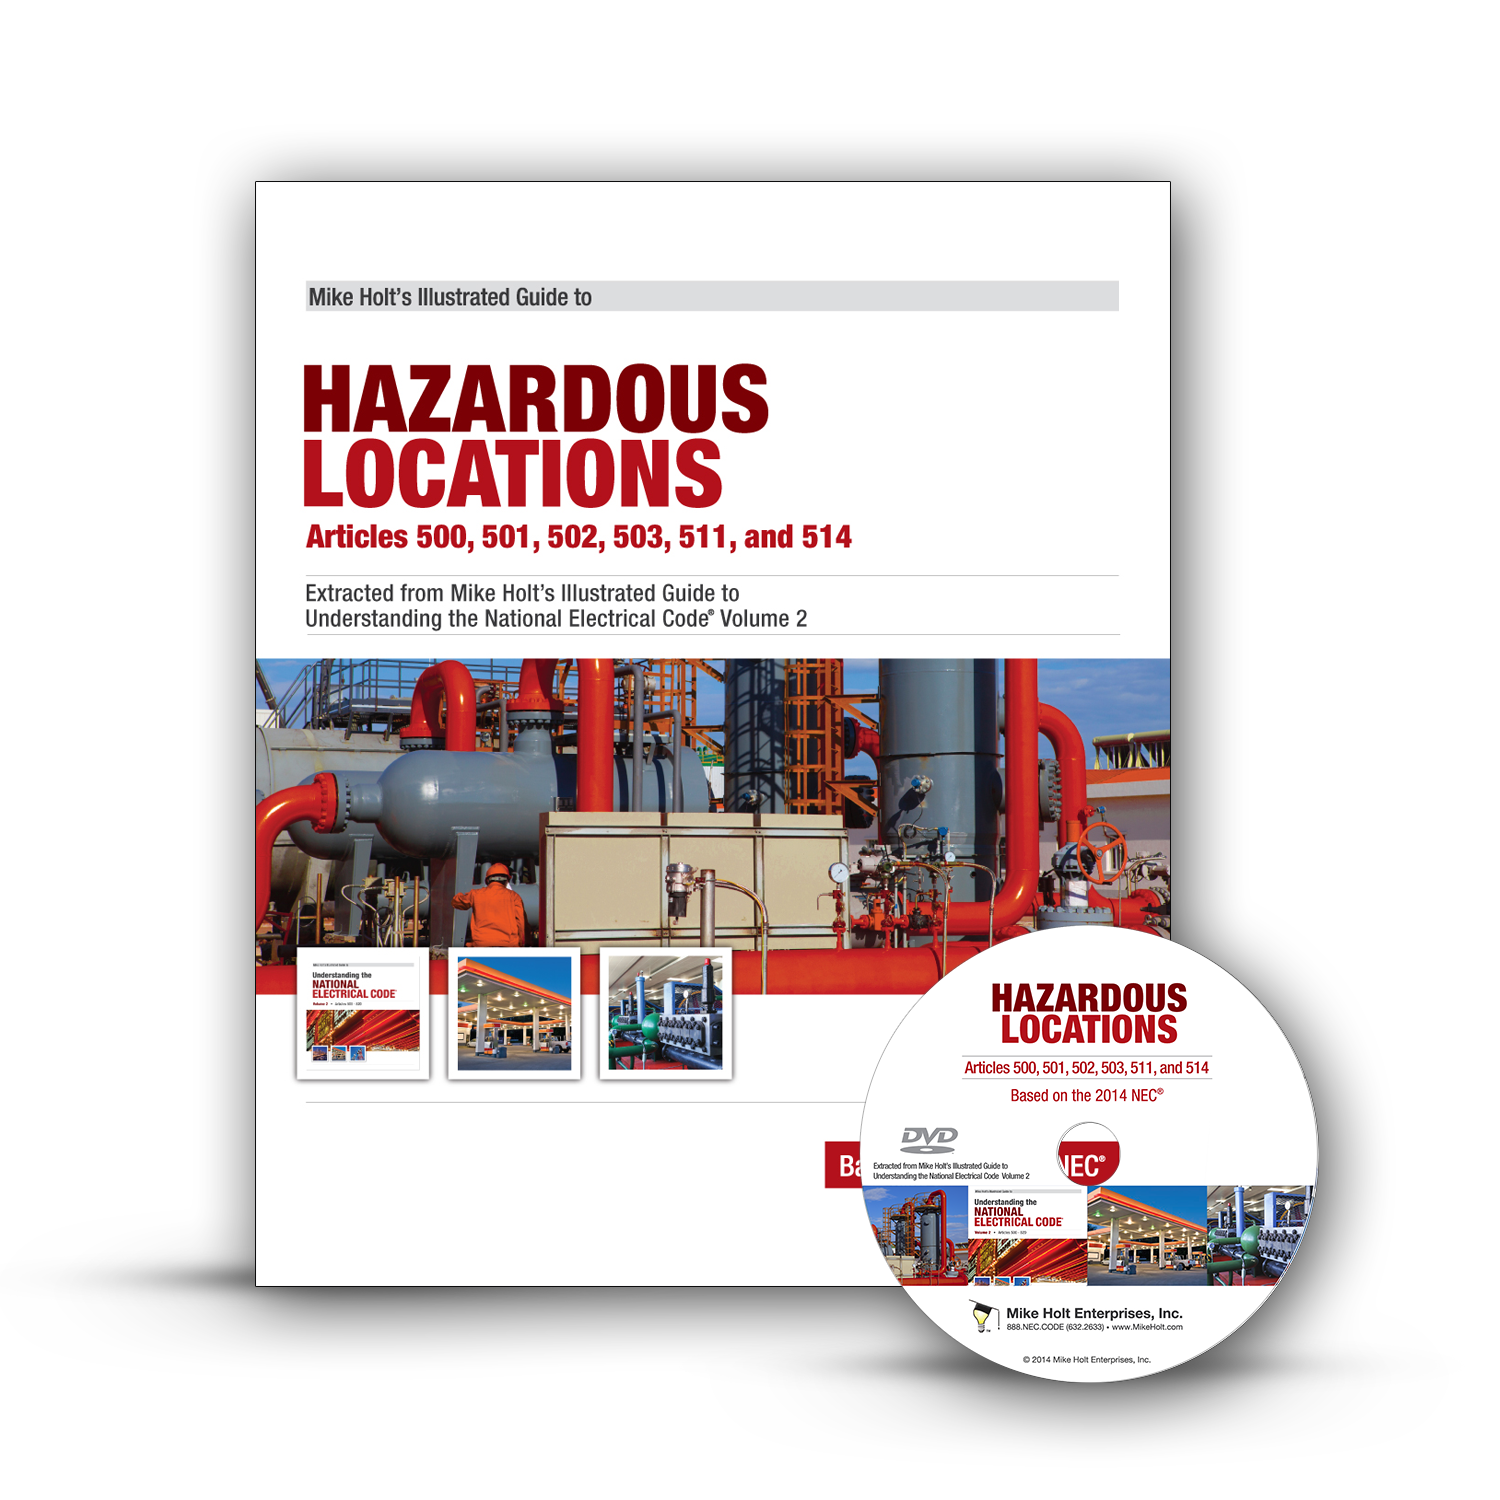 Mike Holt Code Amp Safety 2014 Hazardous Locations Dvd Package